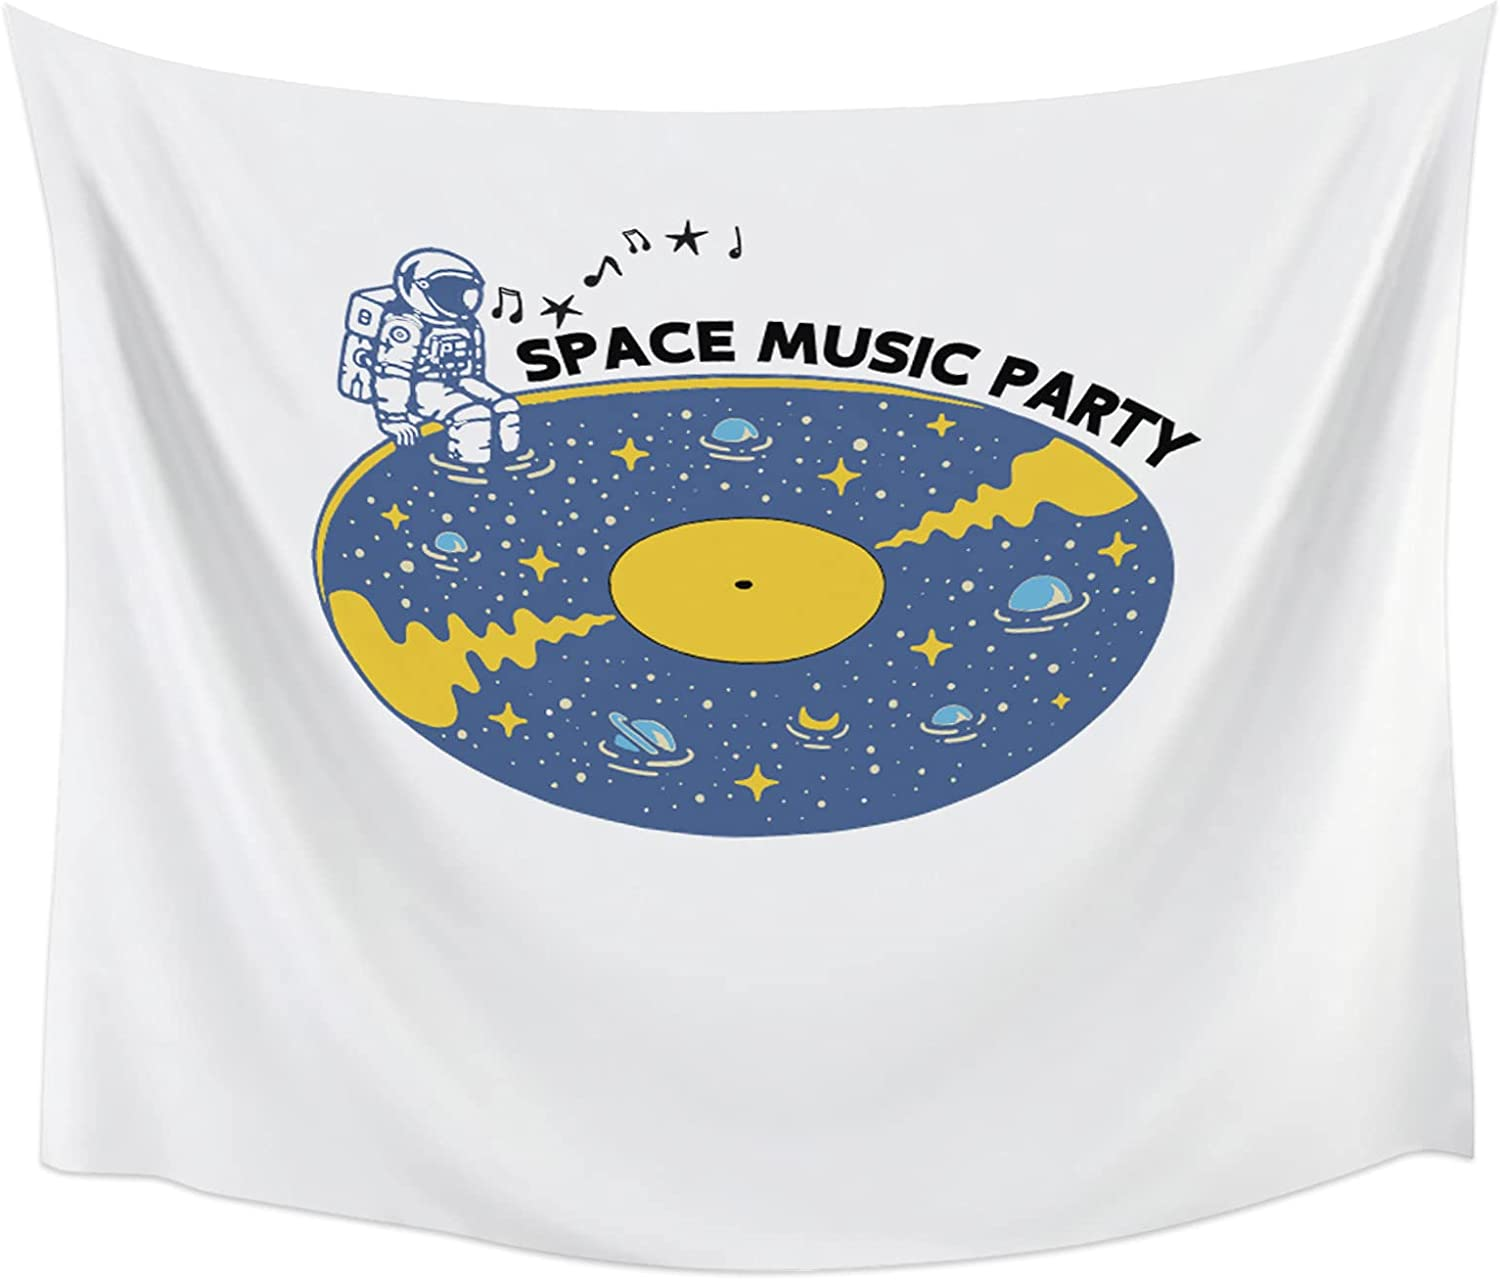 Tapestry Wrinkle Proof Wall Hanging Space Music Party Limited Special Baltimore Mall Price A